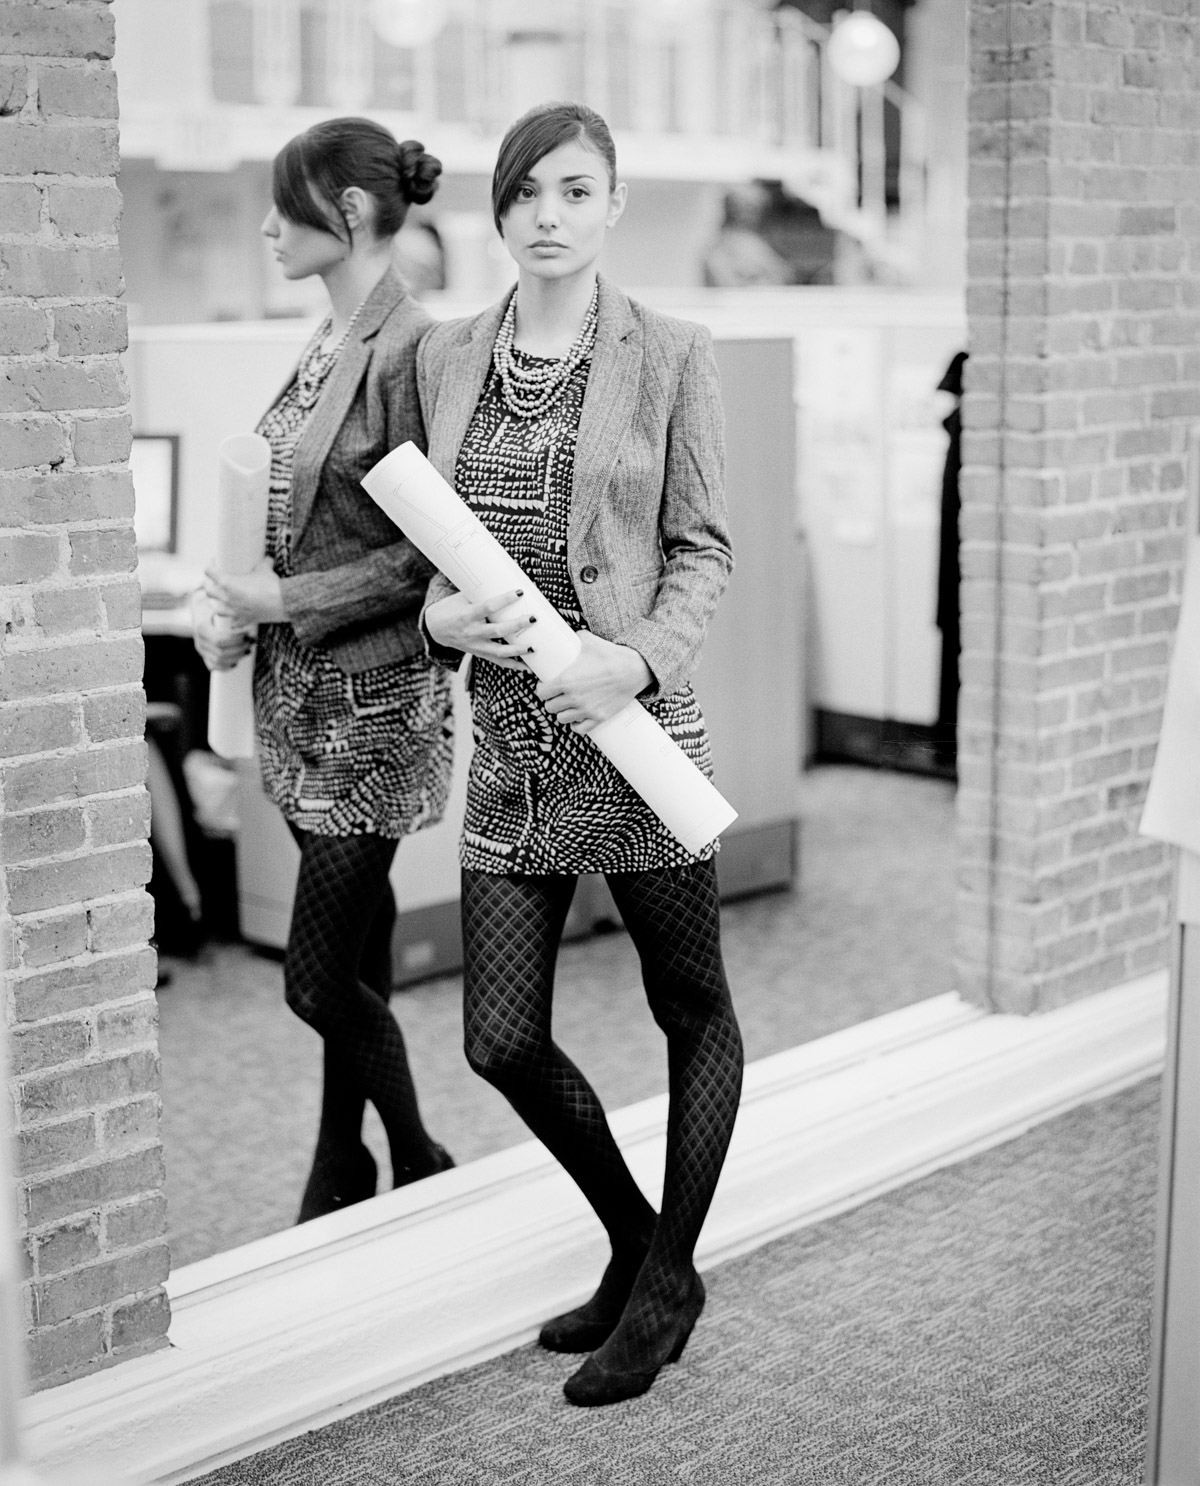 NYC street fashion photography in black and white with model Melina DiMarco in office mirror for French fashion brand Nu New York Union Square